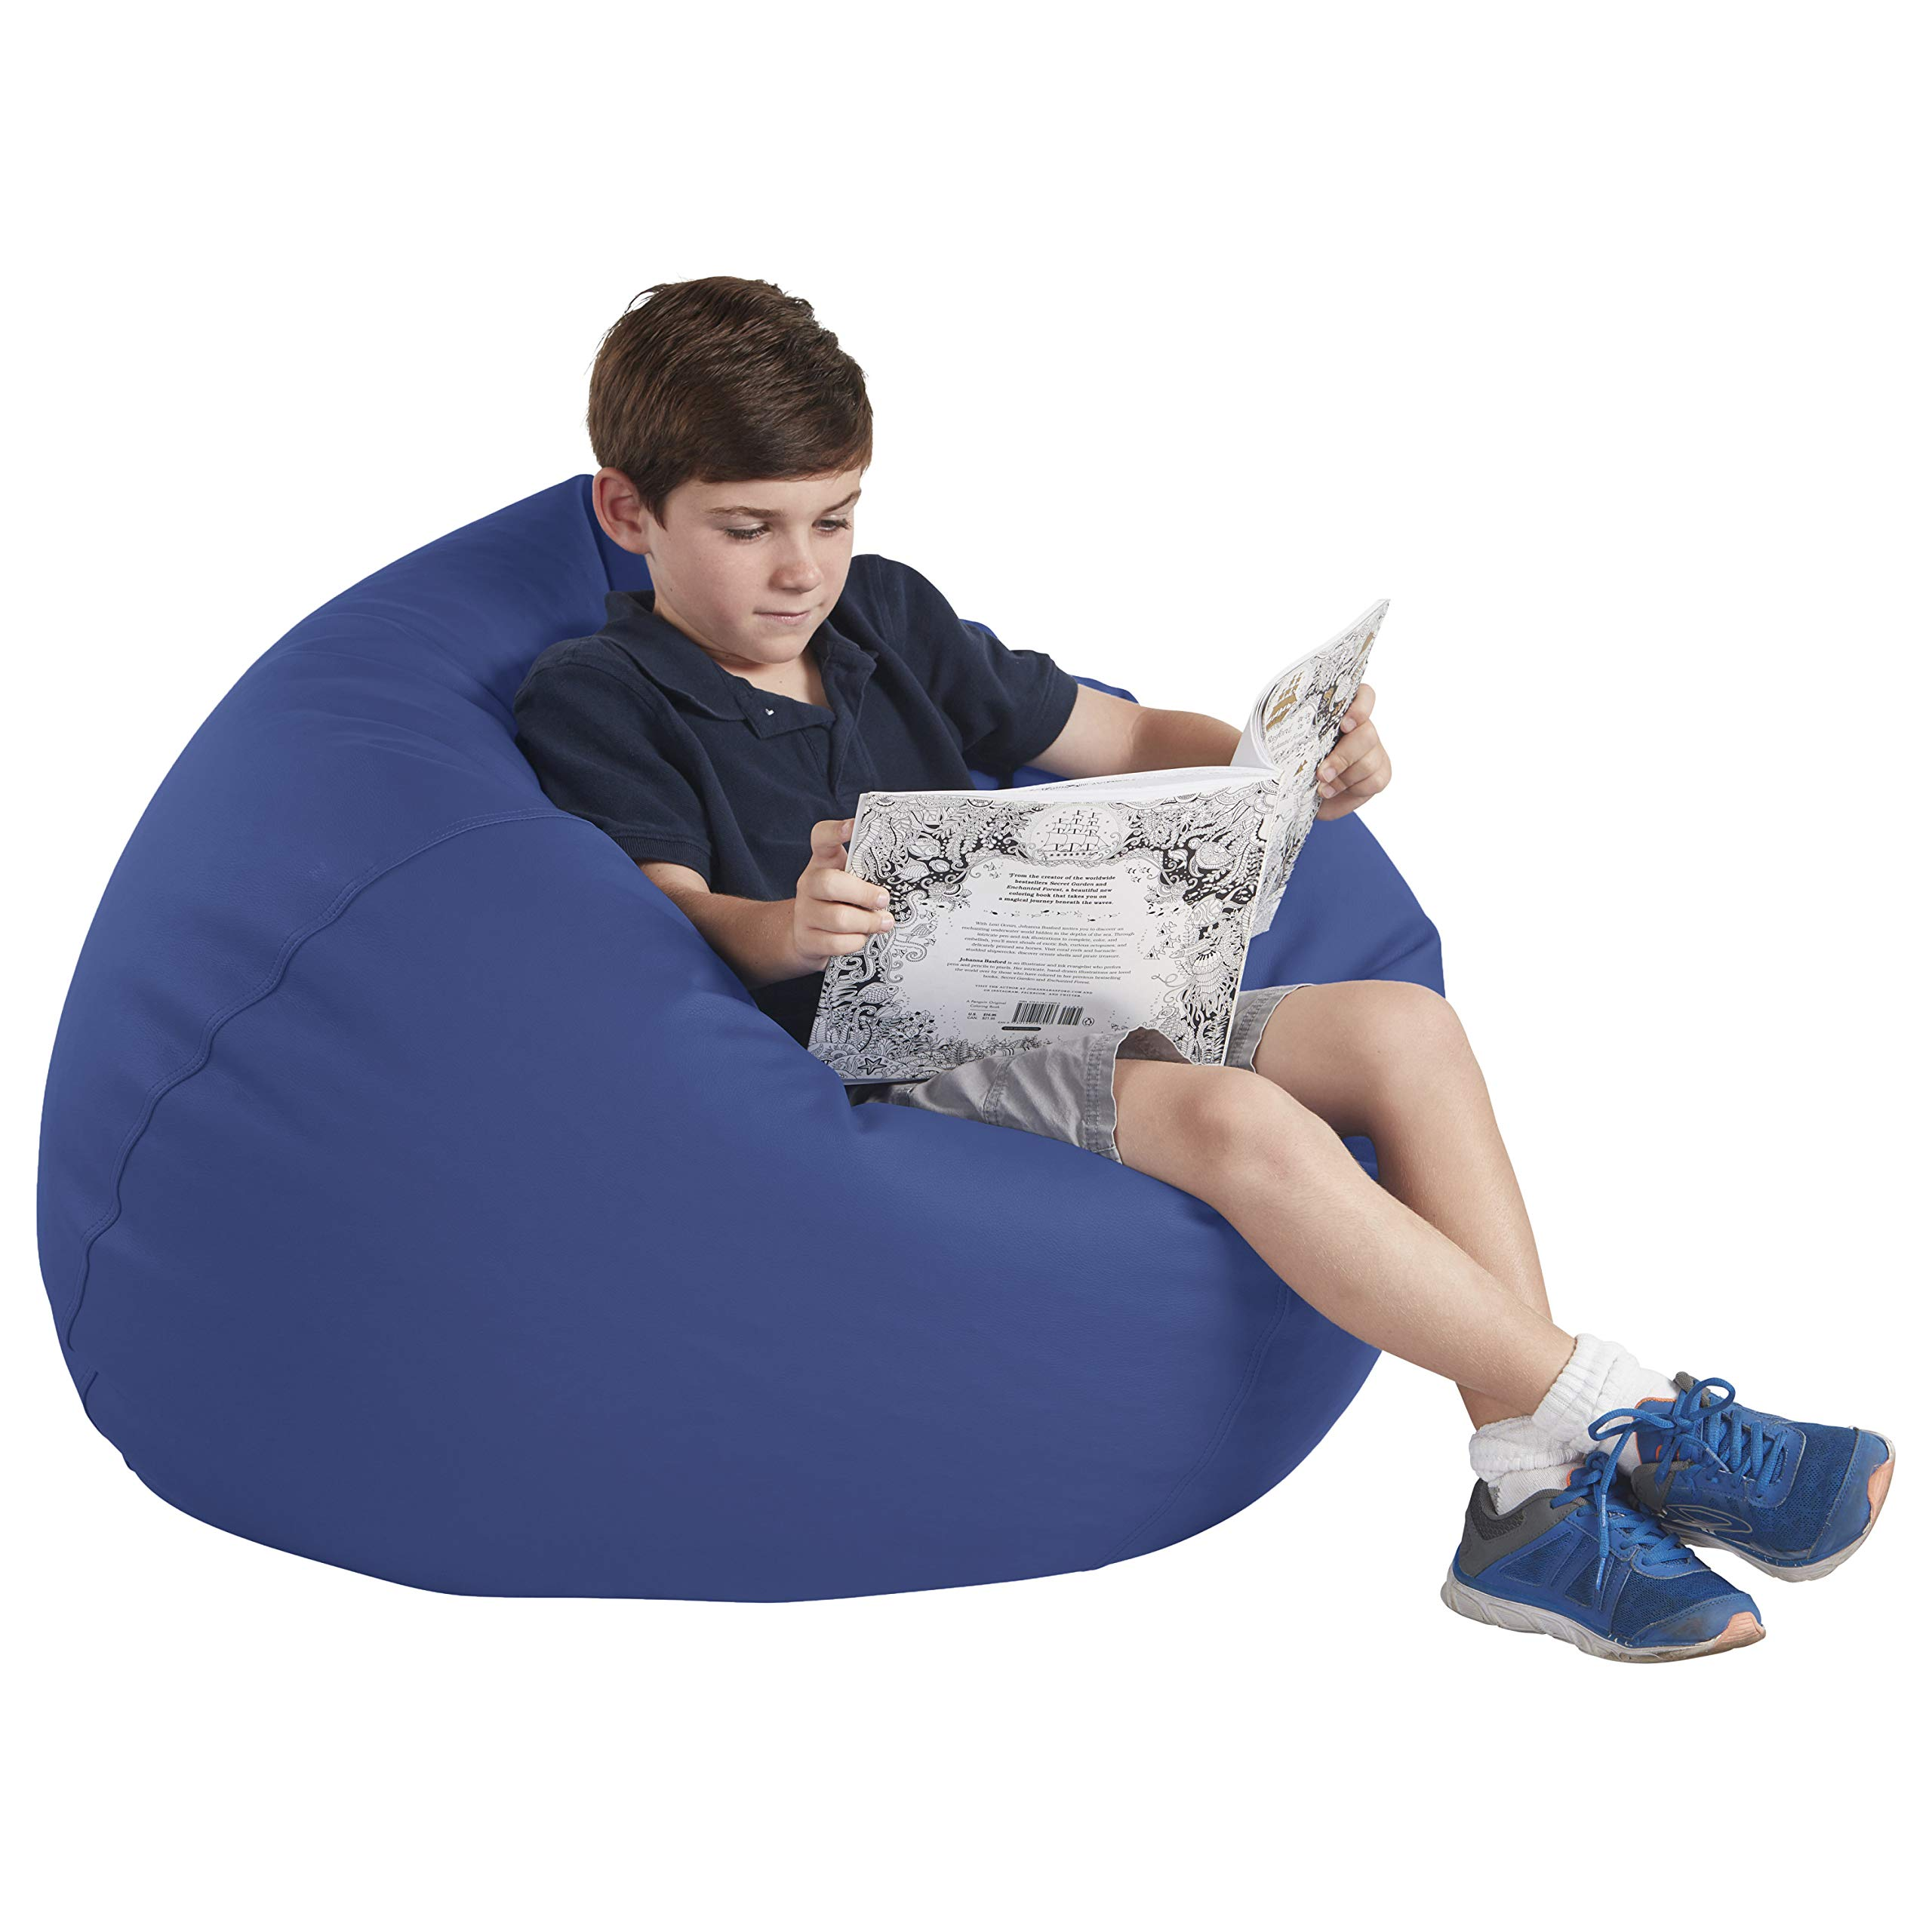 FDP SoftScape Classic 35'' Junior Bean Bag Chair, Furniture for Kids, Perfect for Reading, Playing Video Games or Relaxing, Alternative Seating for Classrooms, Daycares, Libraries or Home - Navy by Factory Direct Partners